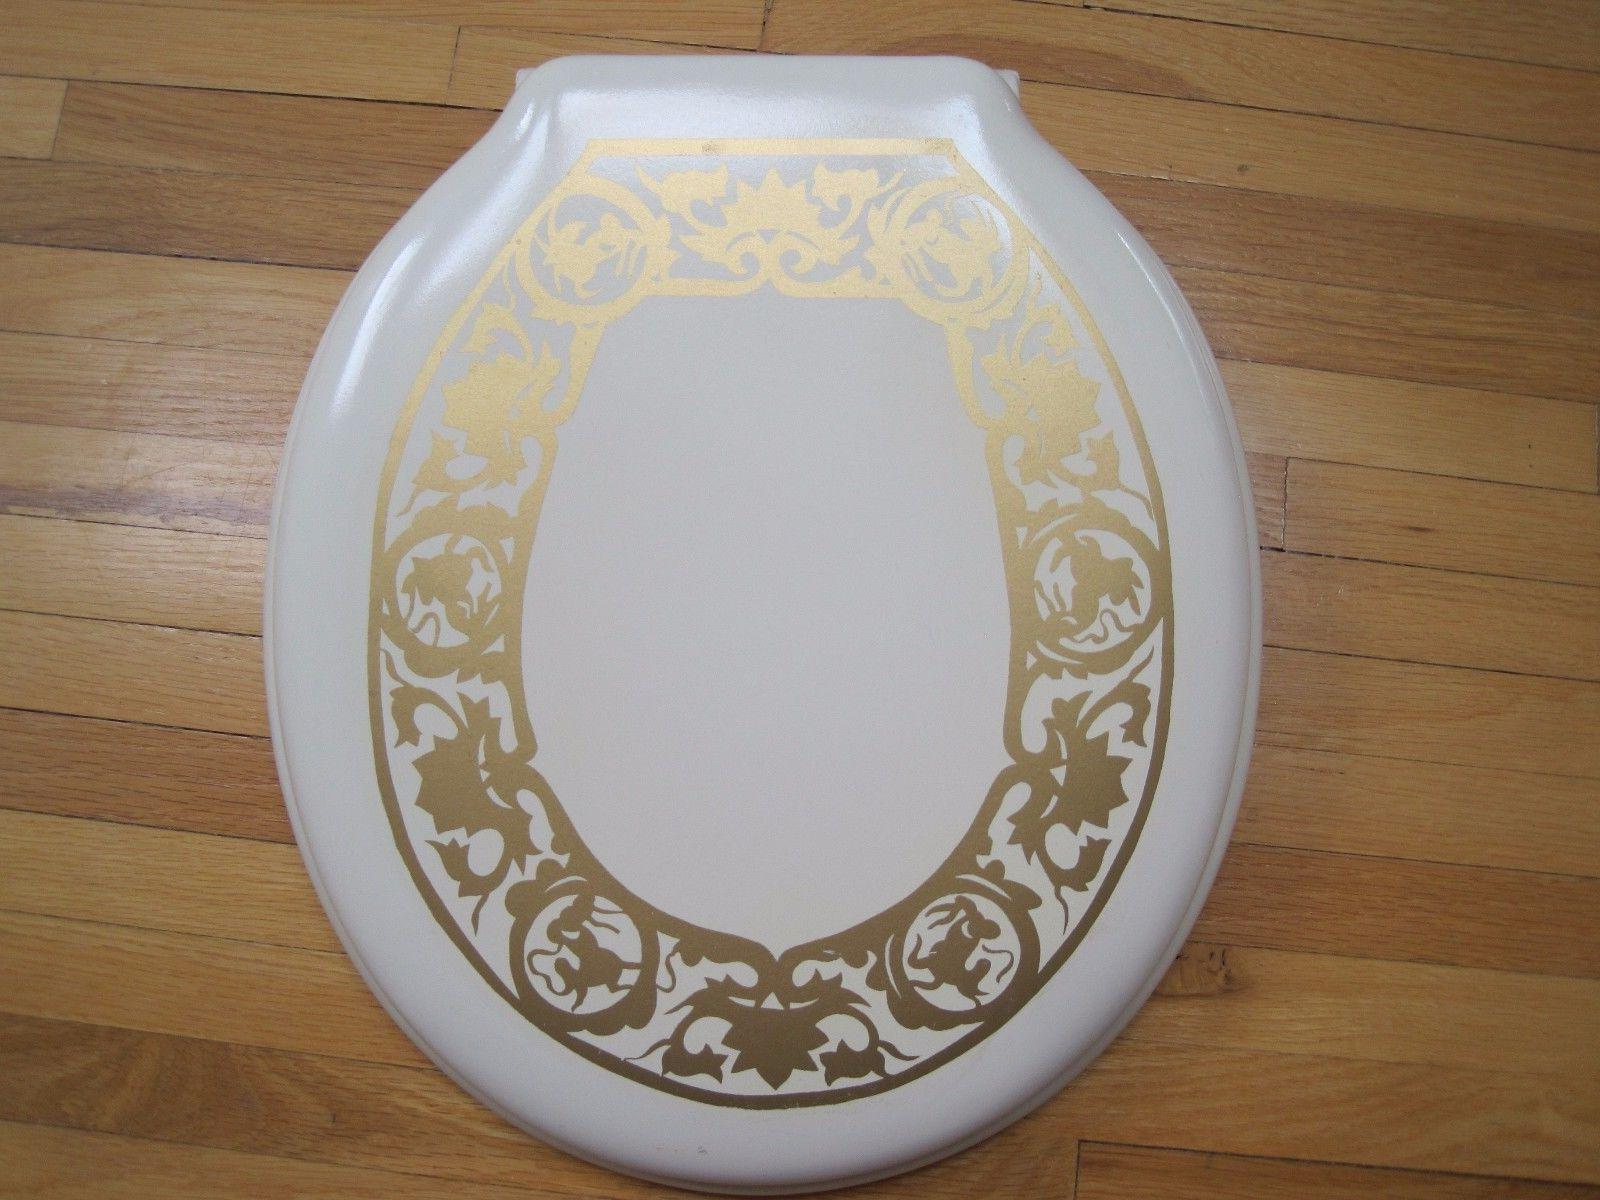 NEW! American Standard Round Toilet Seat with Beautiful Gold